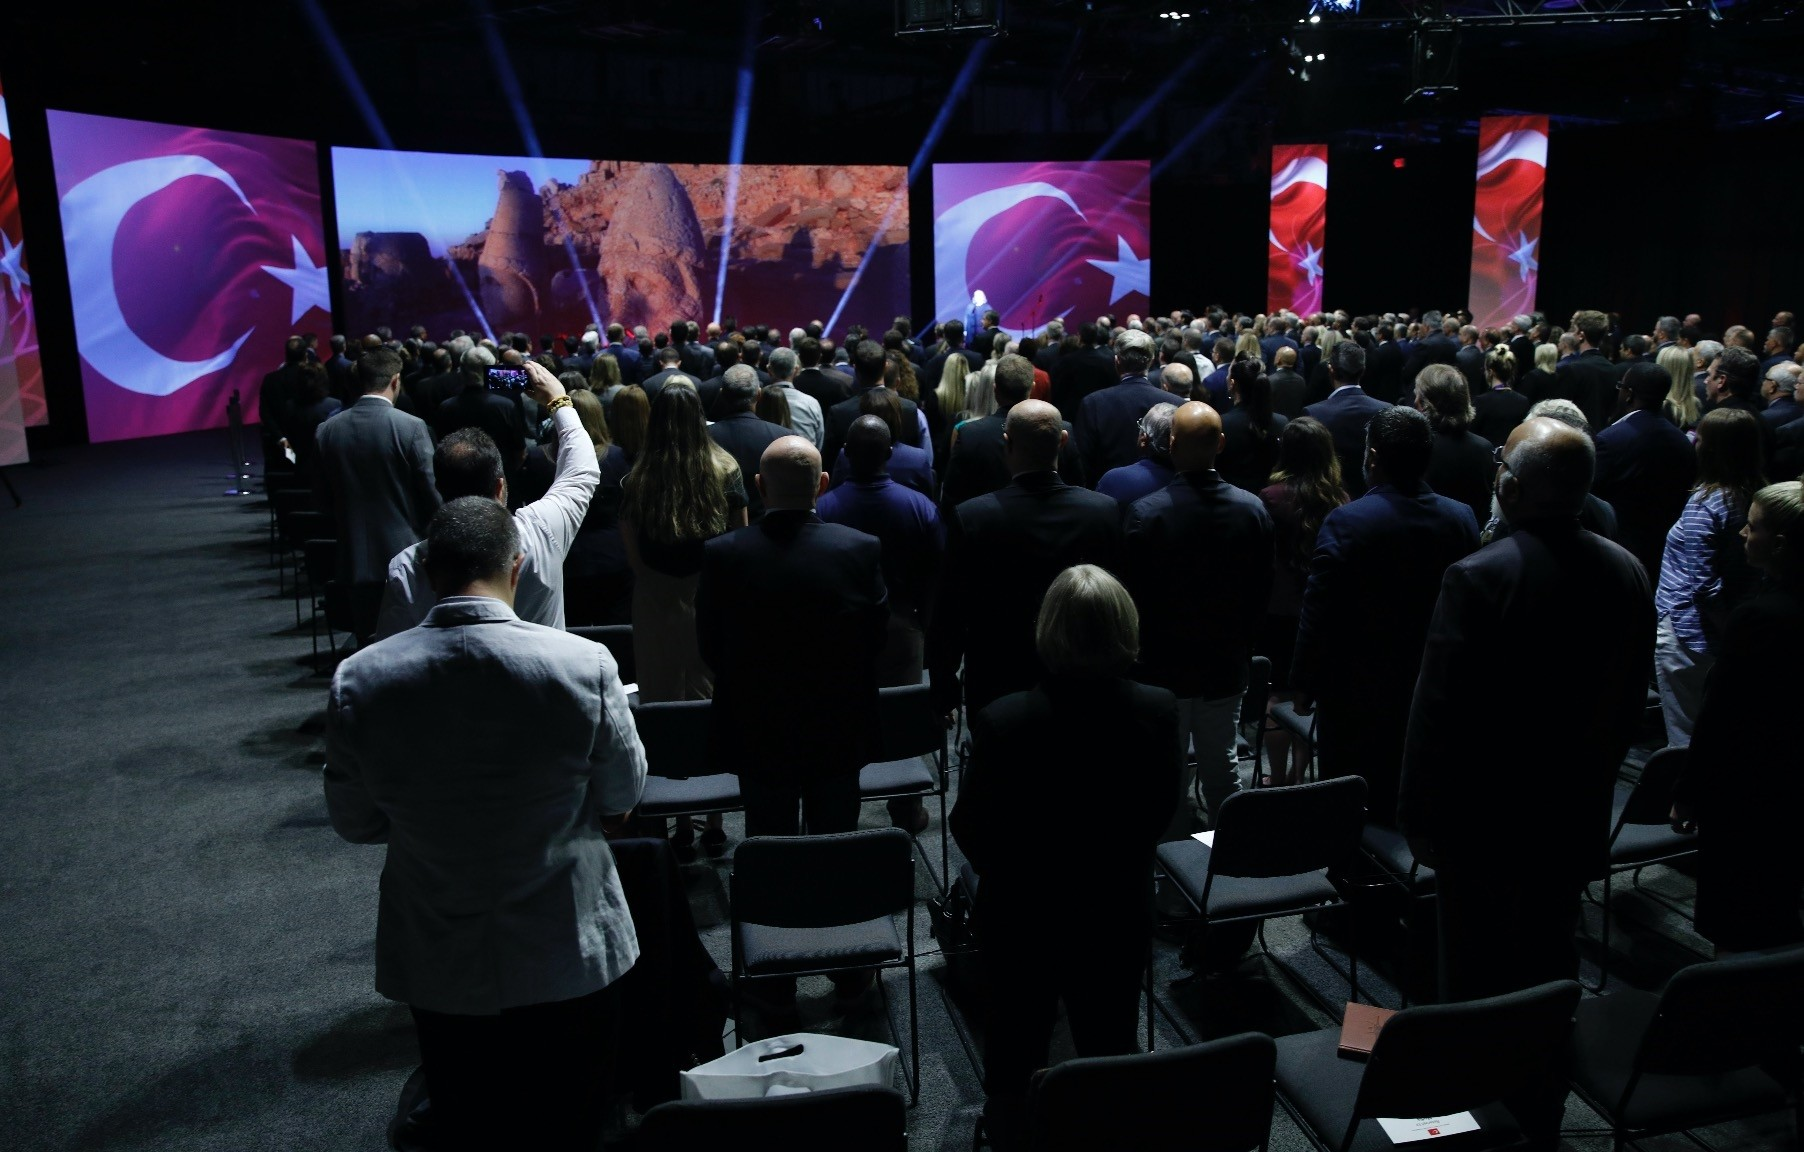 Attendees rise to their feet to applaud during the ceremony marking the delivery of F-35 jets to Turkey at Lockheed Martinu2019s facilities, June 21, Fort Worth, Texas.